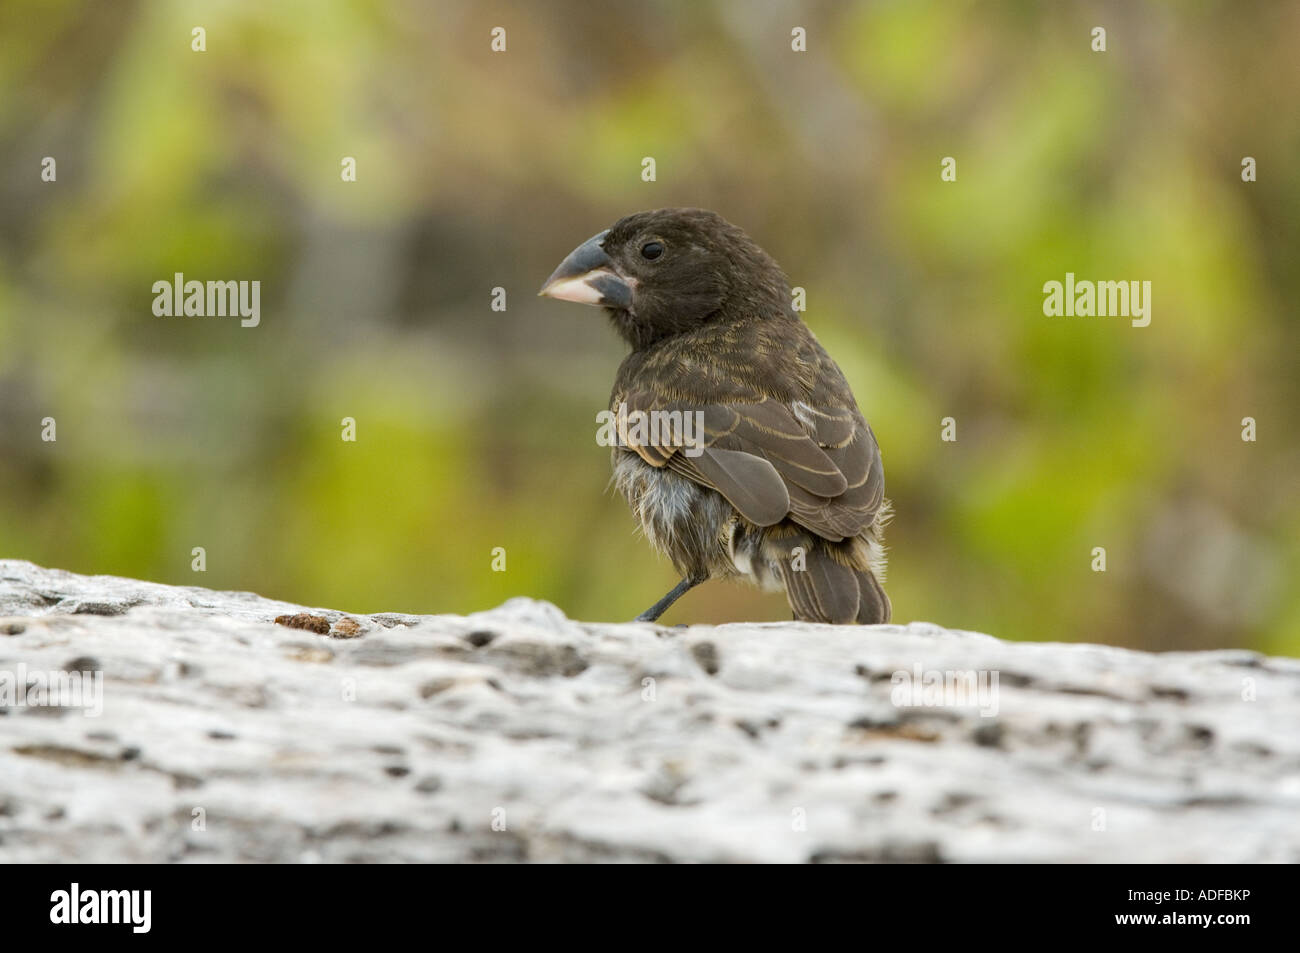 Large Cactus Finch (Geospiza conirostris) perched on the log, Gardner Bay (Bahia) Espanola Hood Island Galapagos - Stock Image